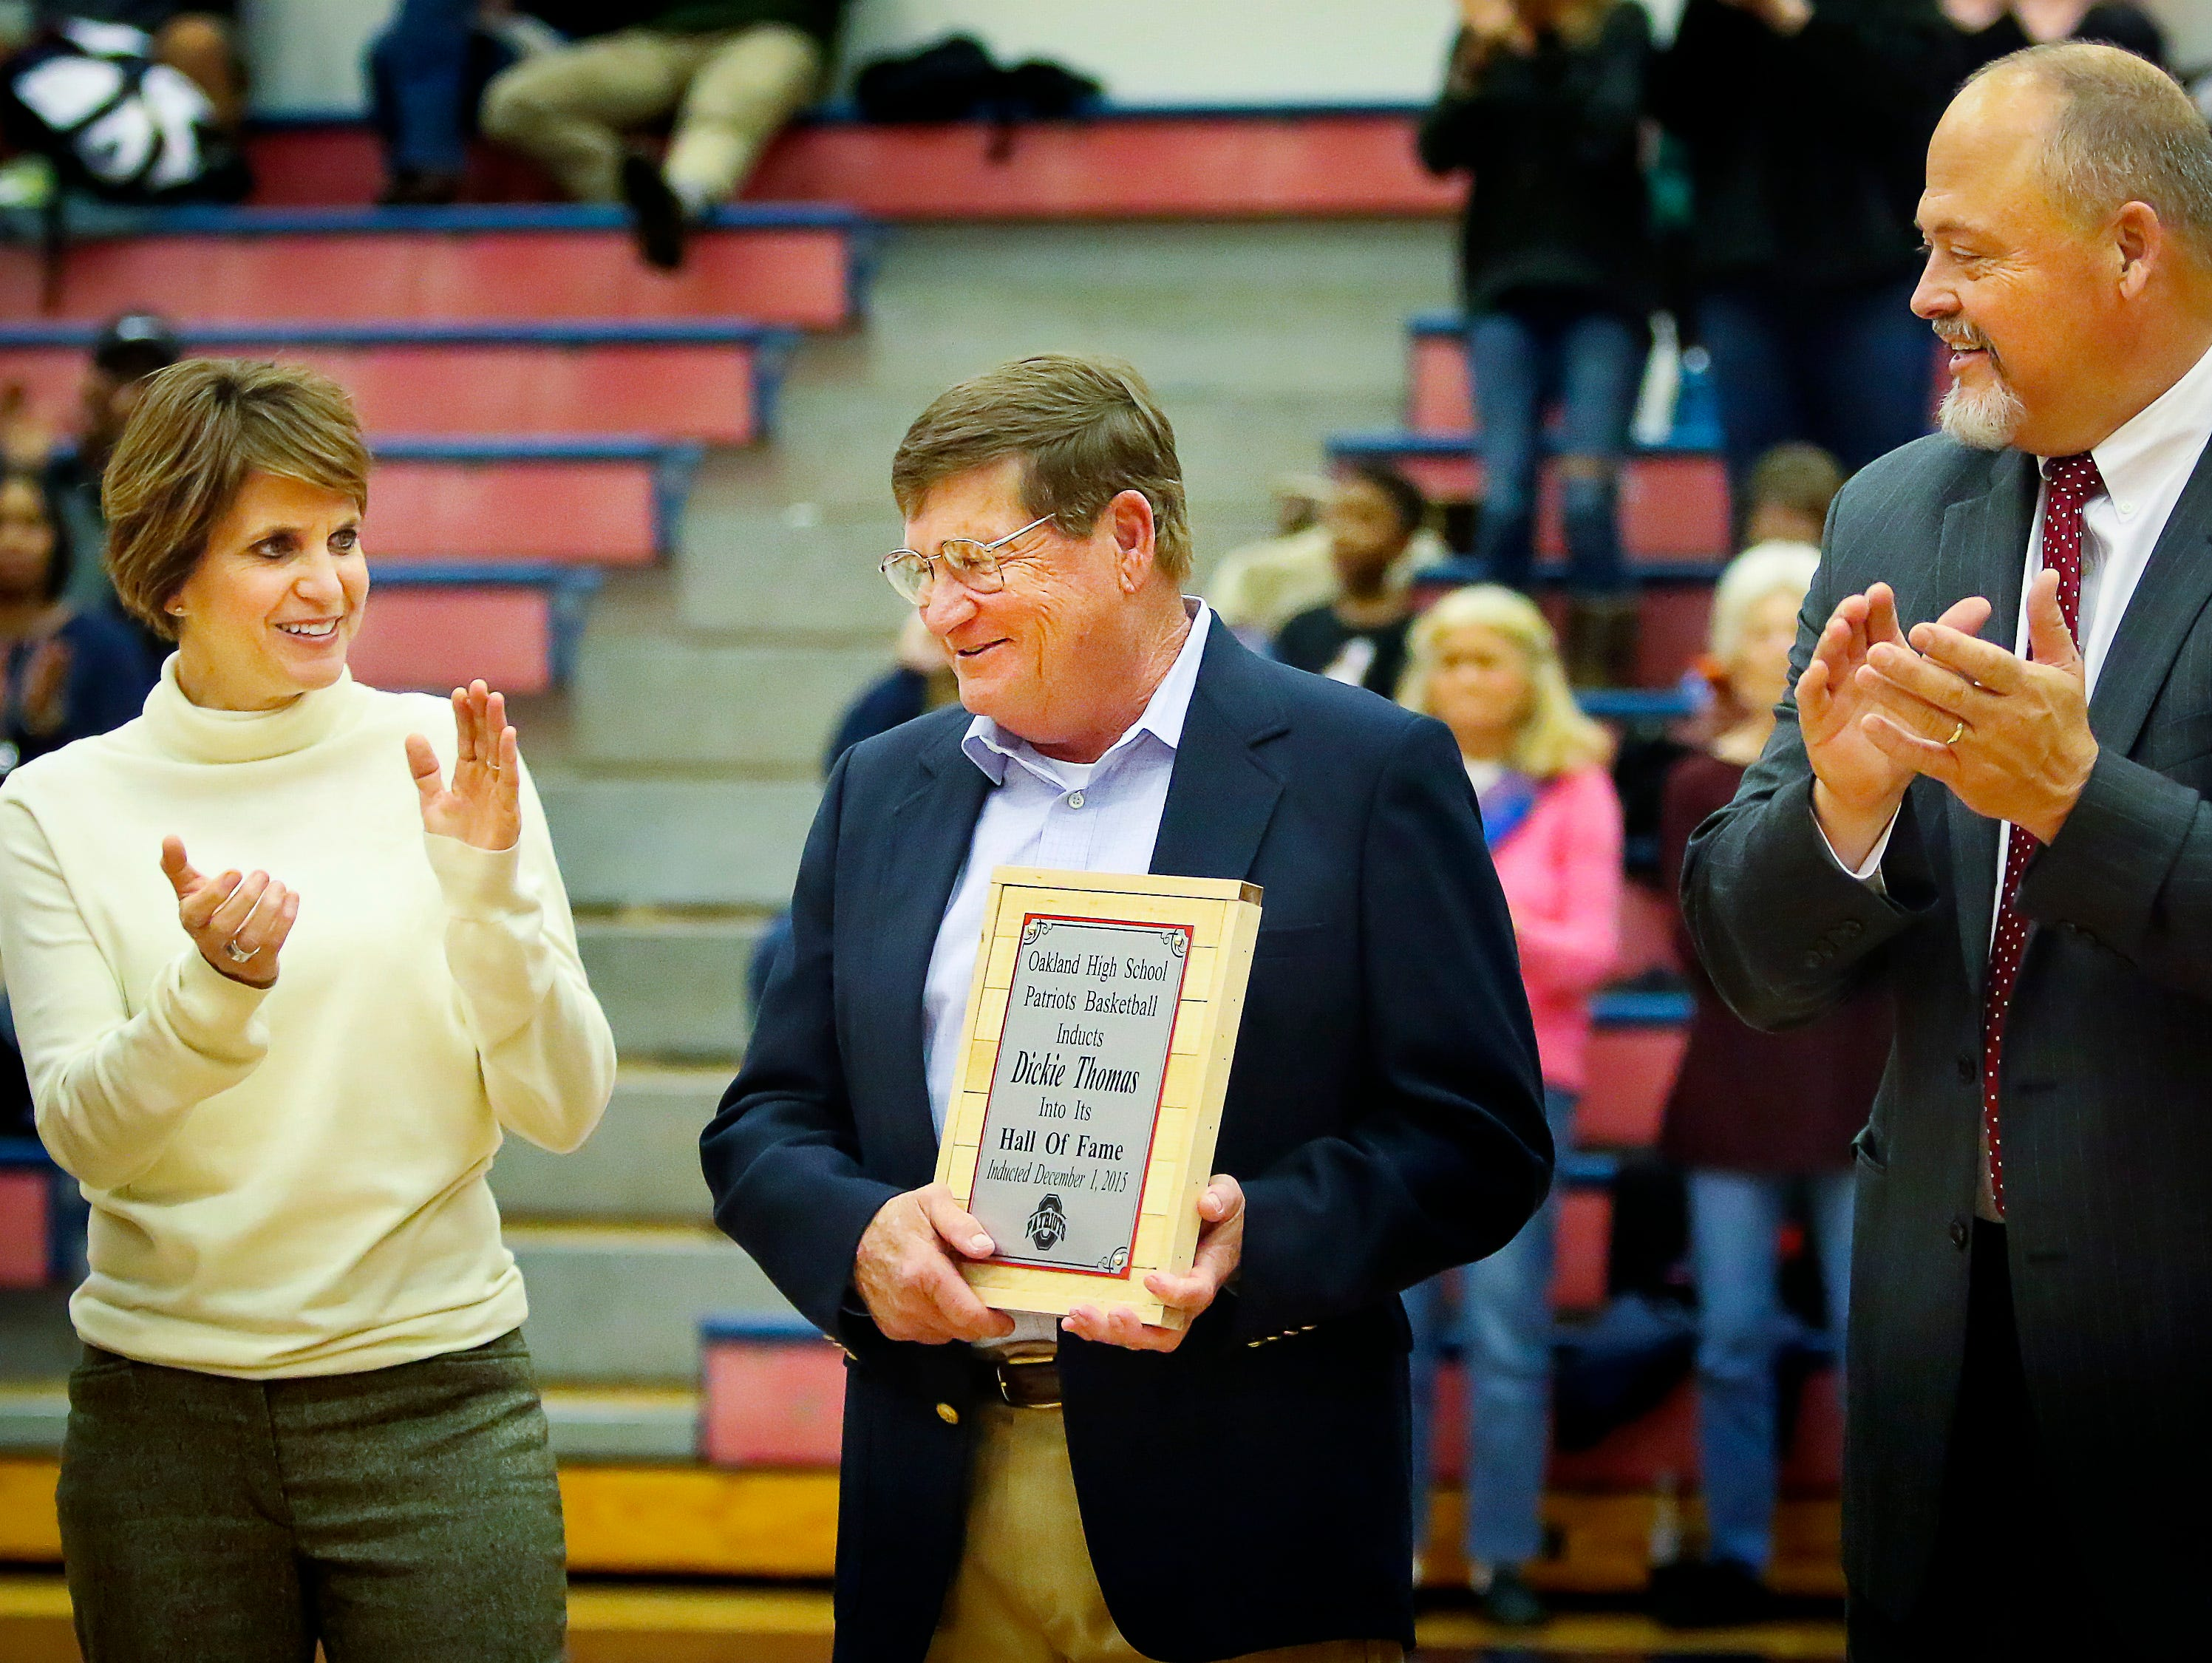 Former Oakland coach Dickie Thomas, center, is honored after being named to the school's basketball hall of fame. To his left is Oakland girls coach Jennifer Grandstaff. Right is Oakland principal Bill Spurlock.